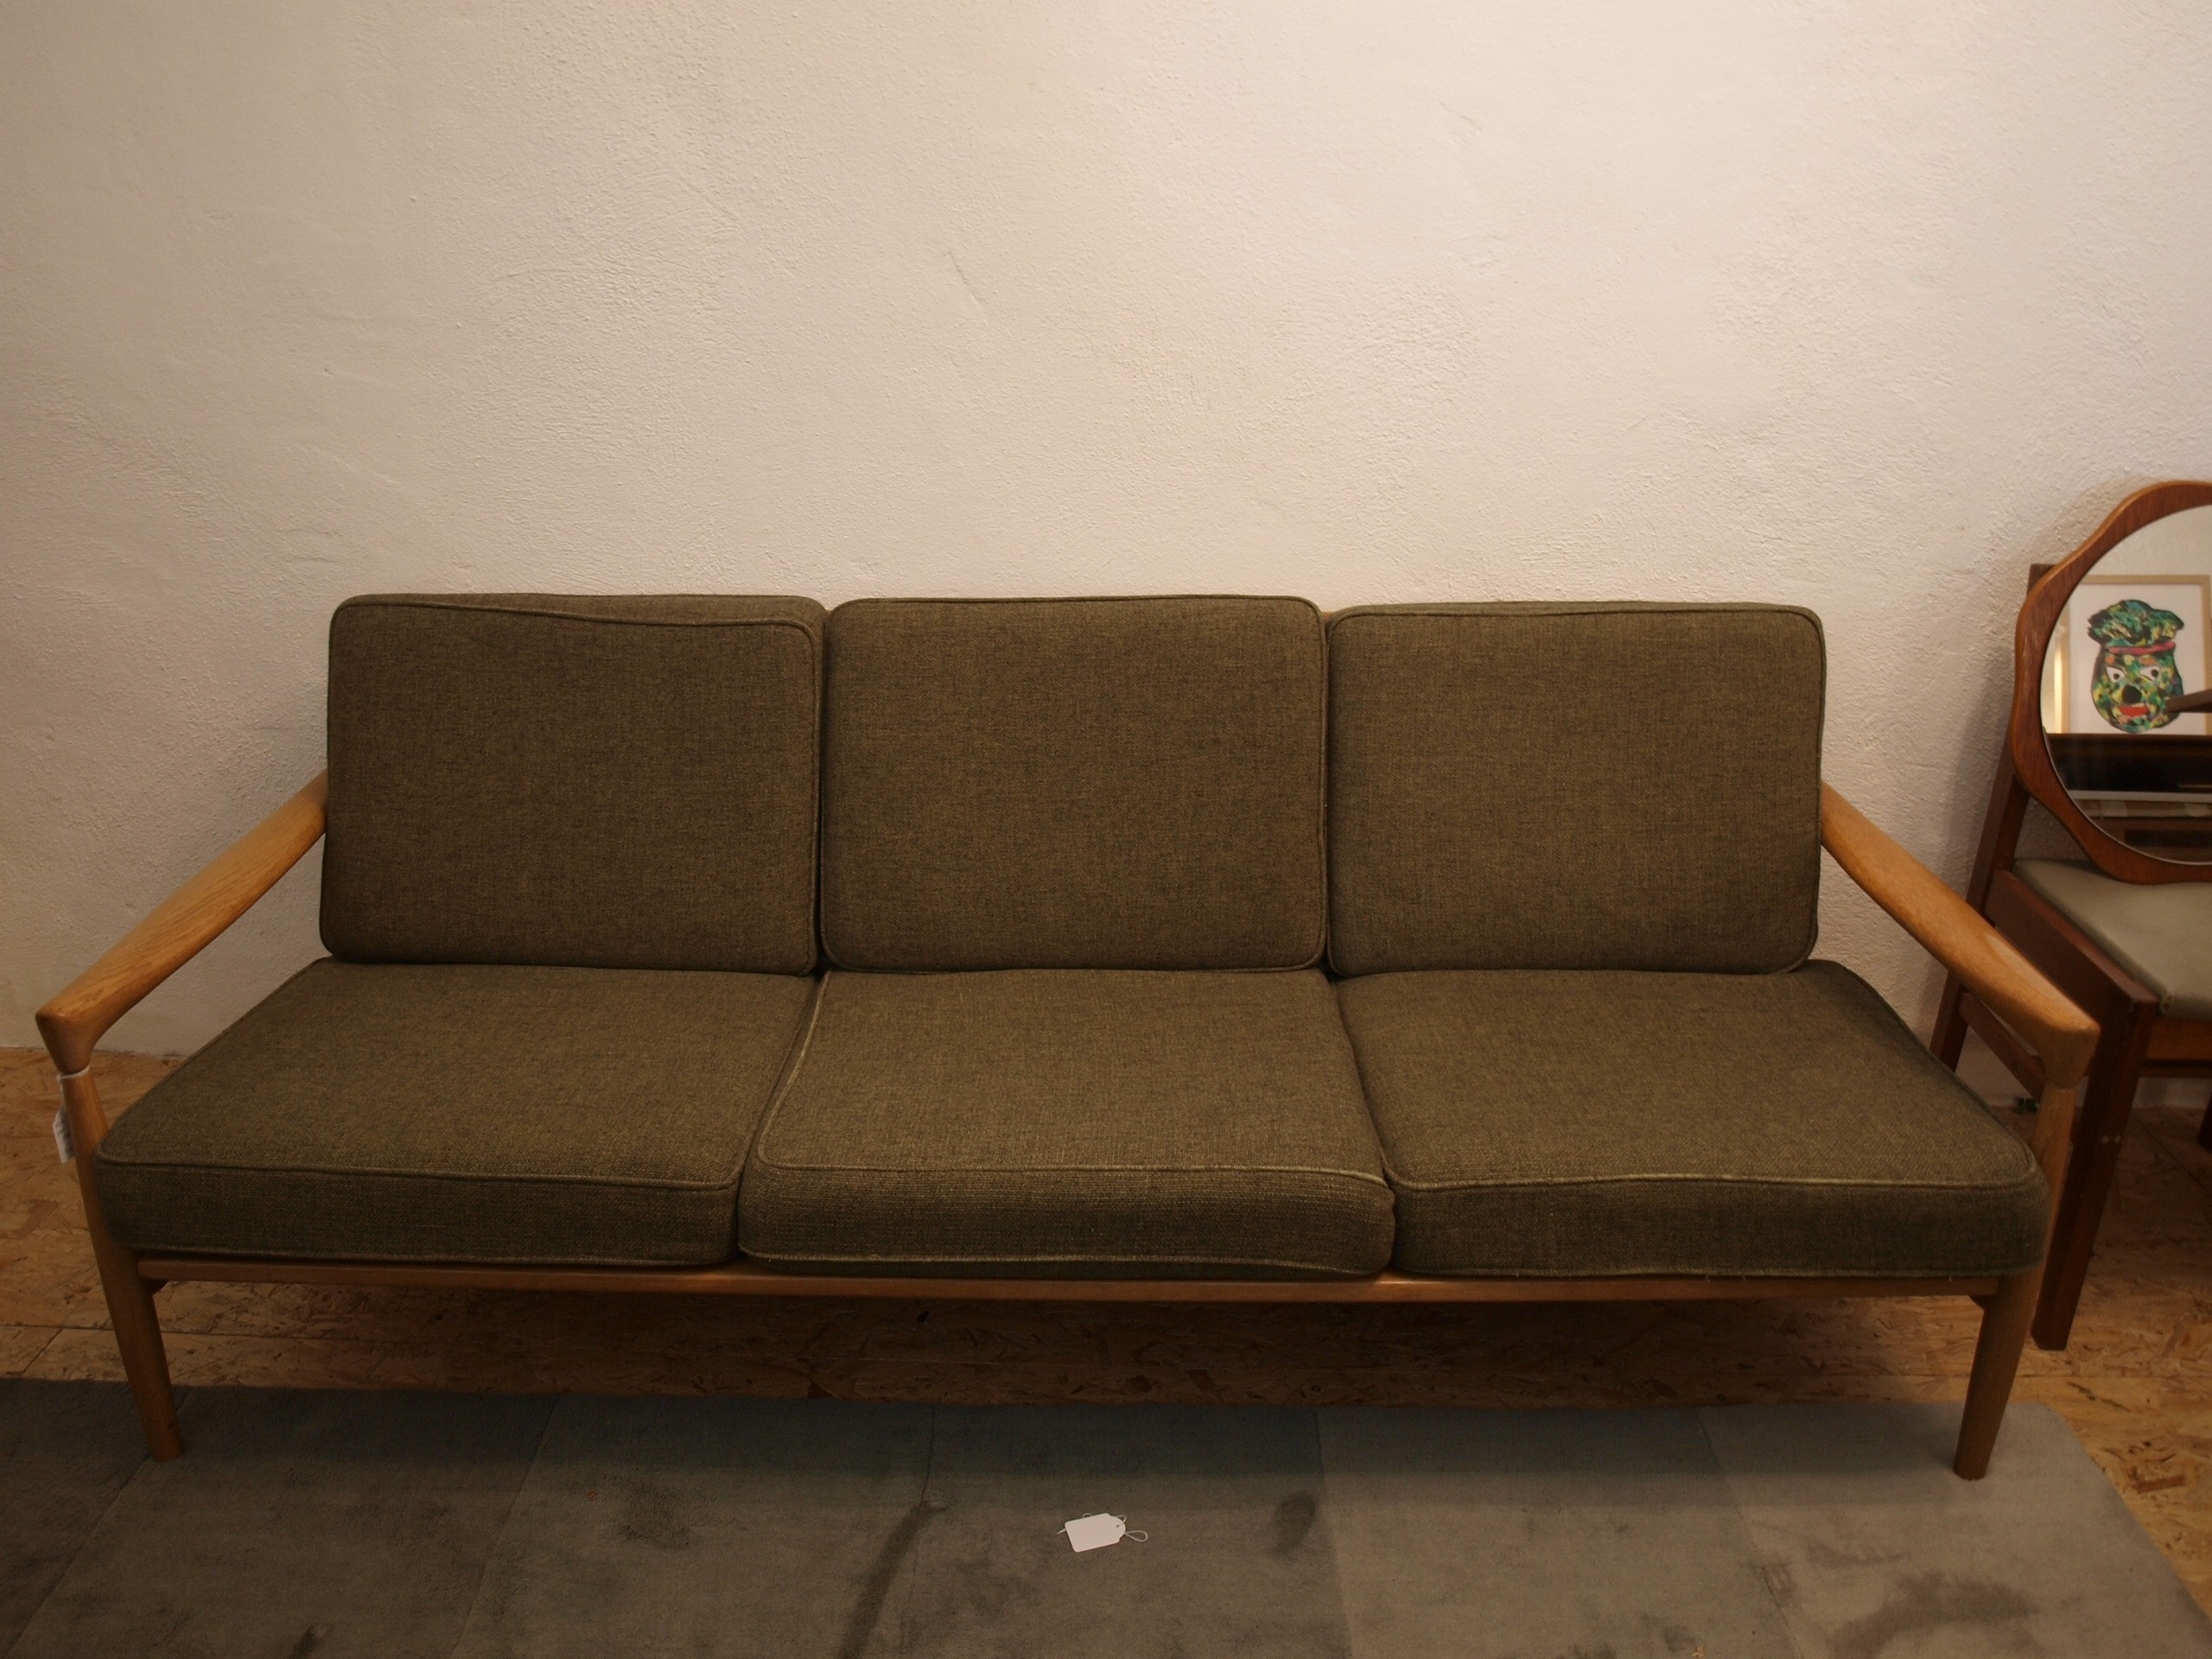 Scandinavian sofa Erik WORTZ 1960s Design Market